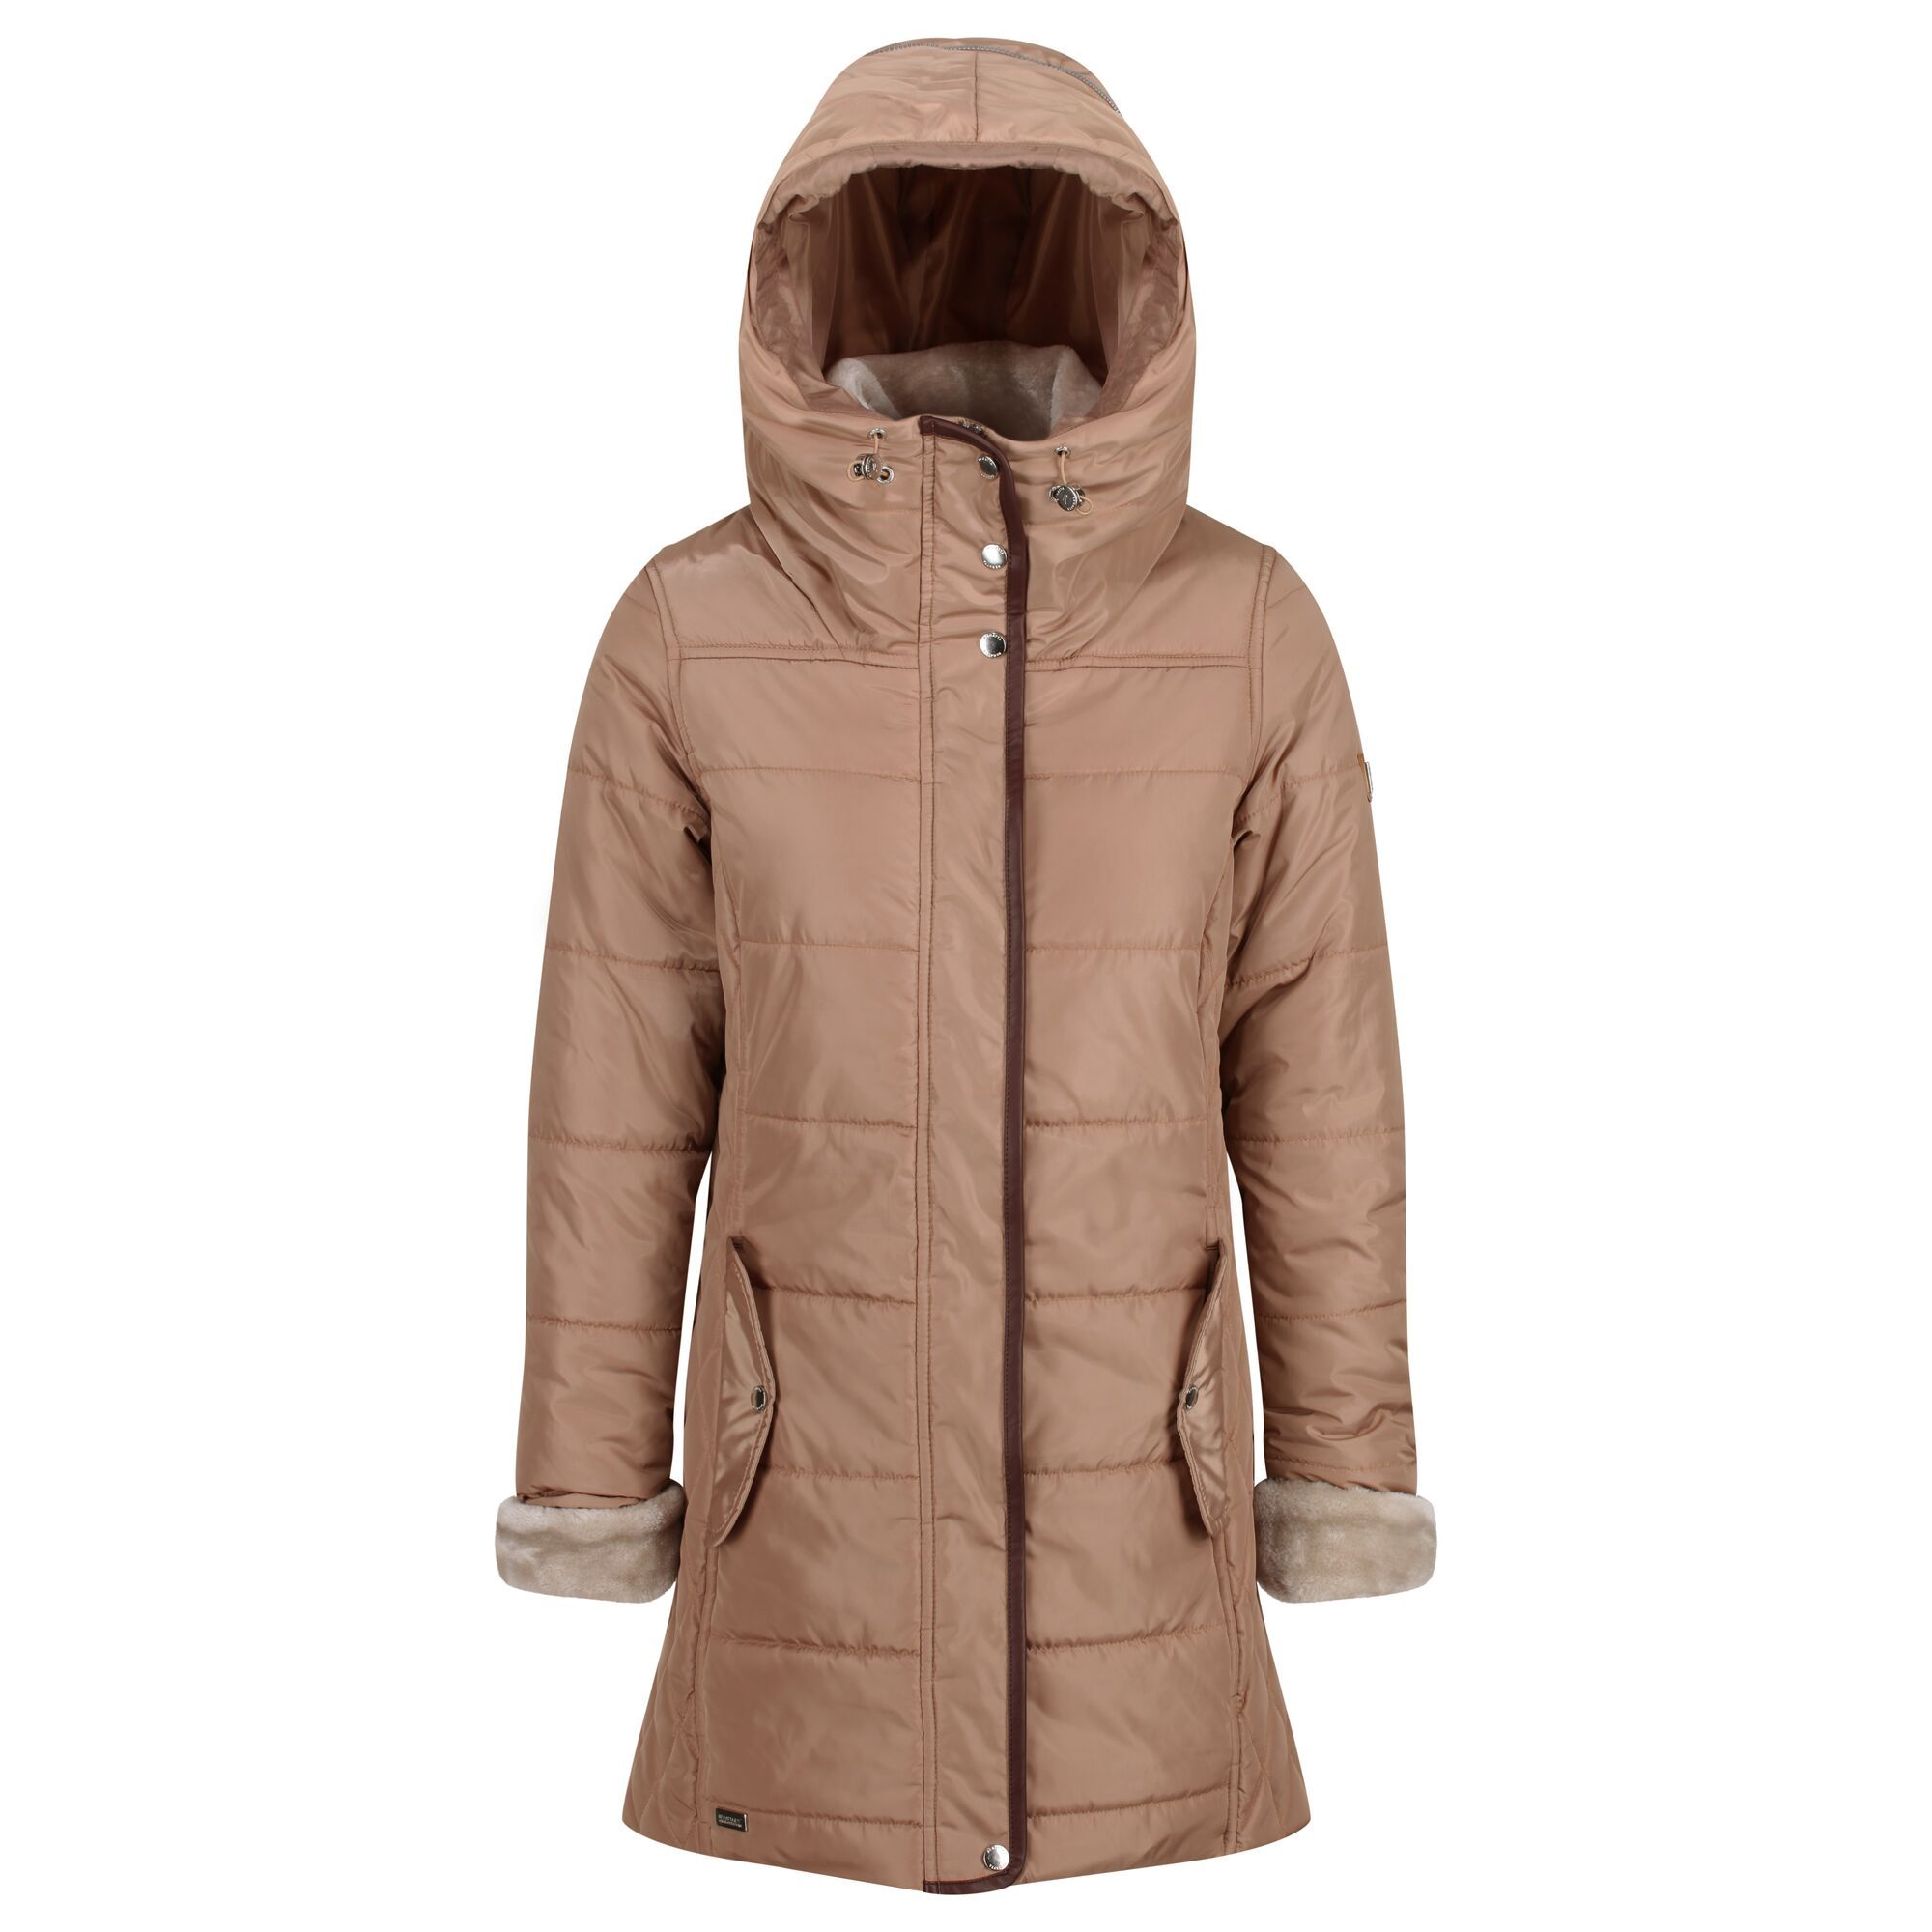 Regatta Womens/Ladies Patchouli Quilted Long Length Jacket